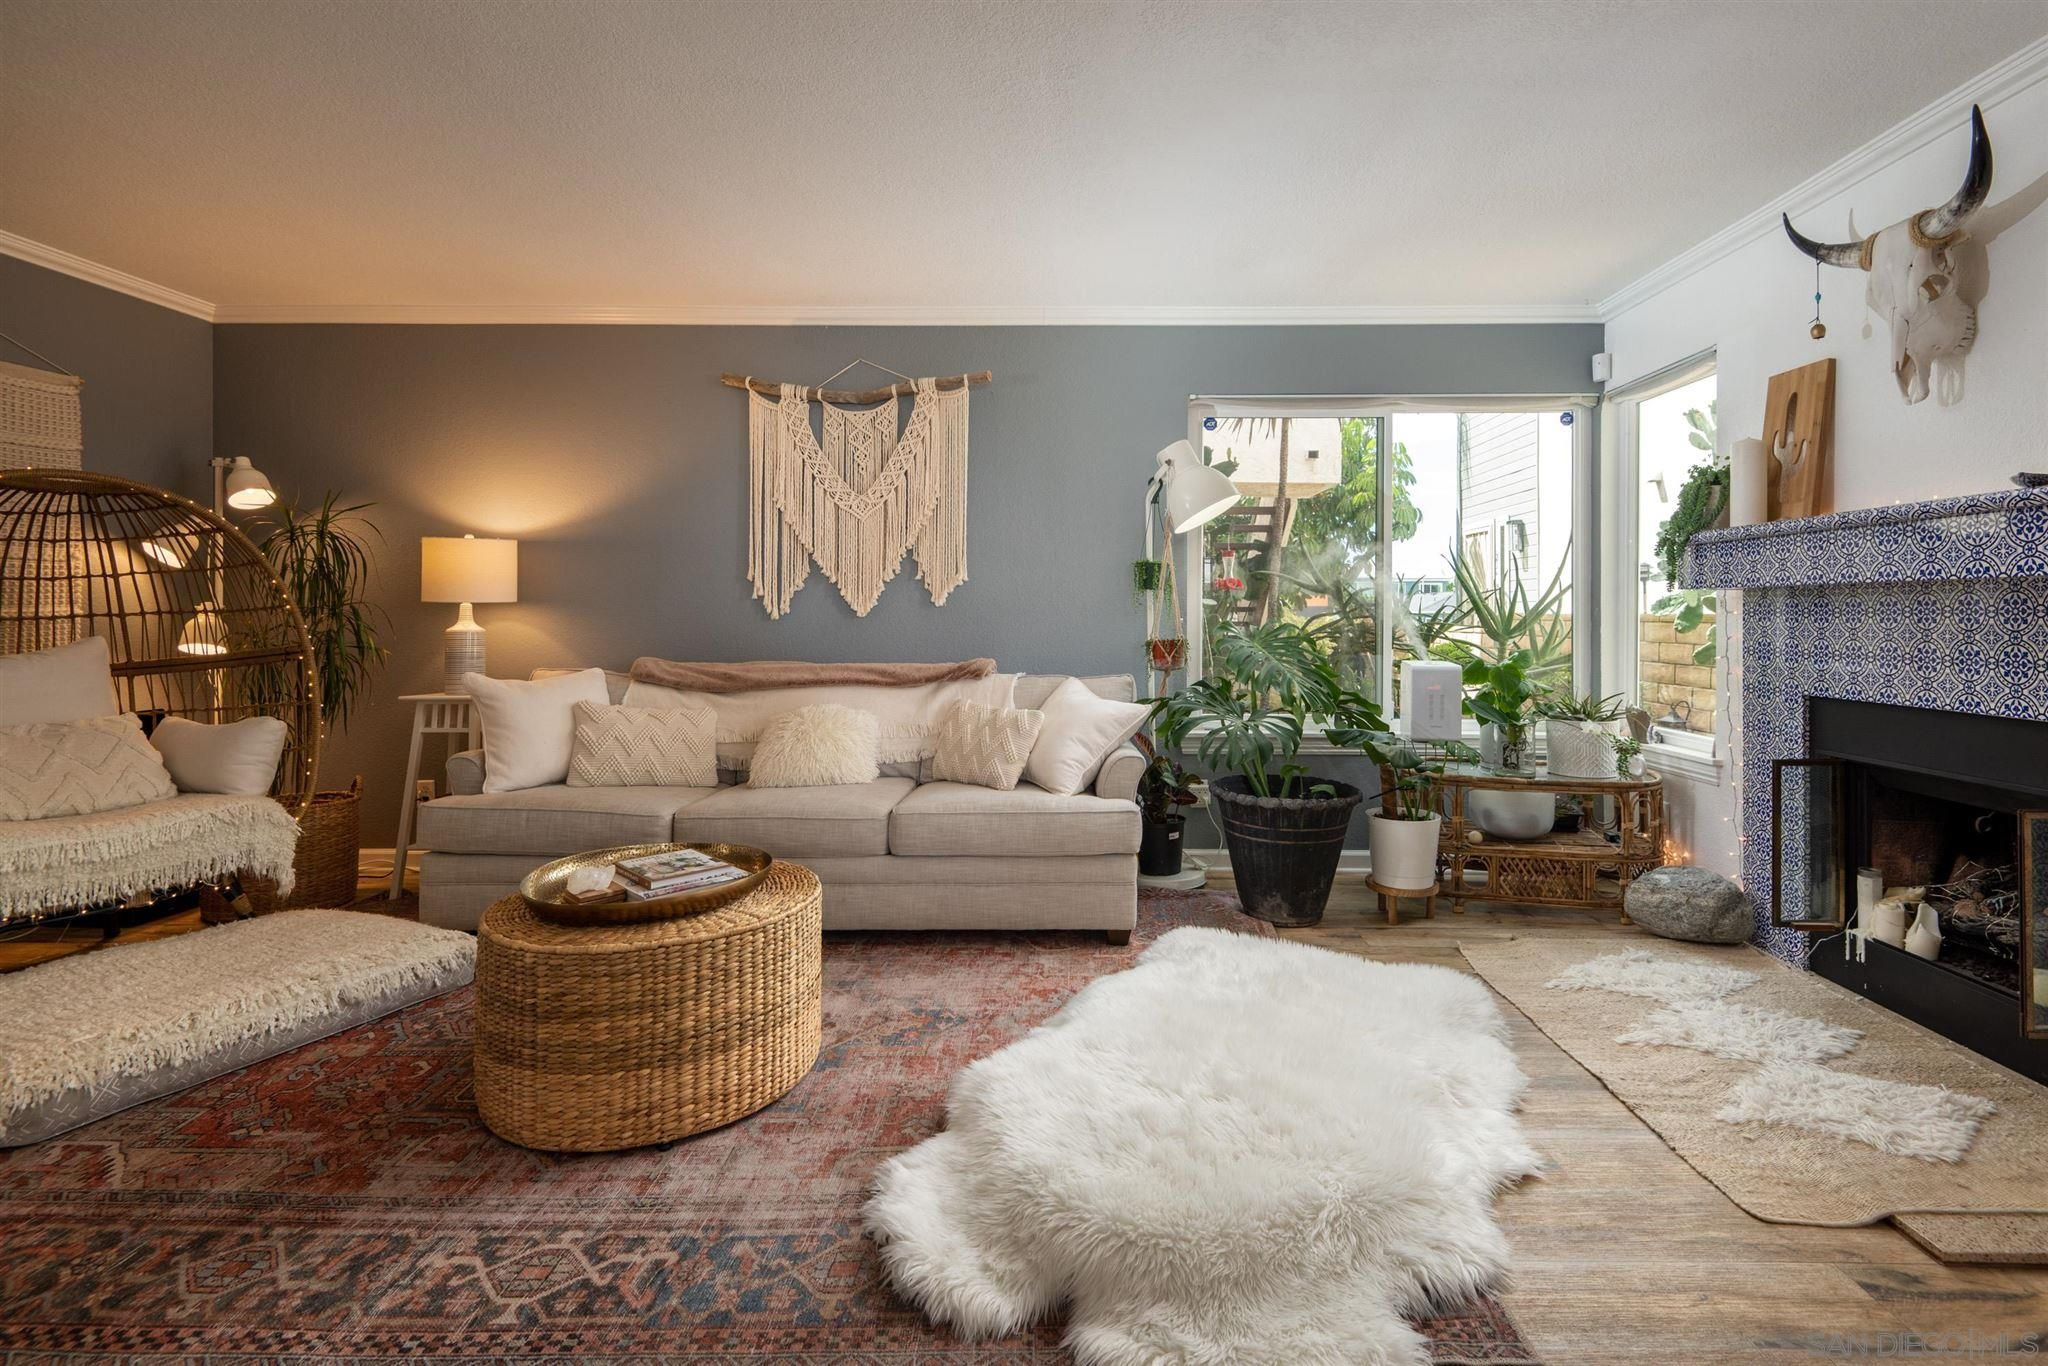 Main Photo: PACIFIC BEACH Condo for sale : 2 bedrooms : 1242 Grand Ave in San Diego